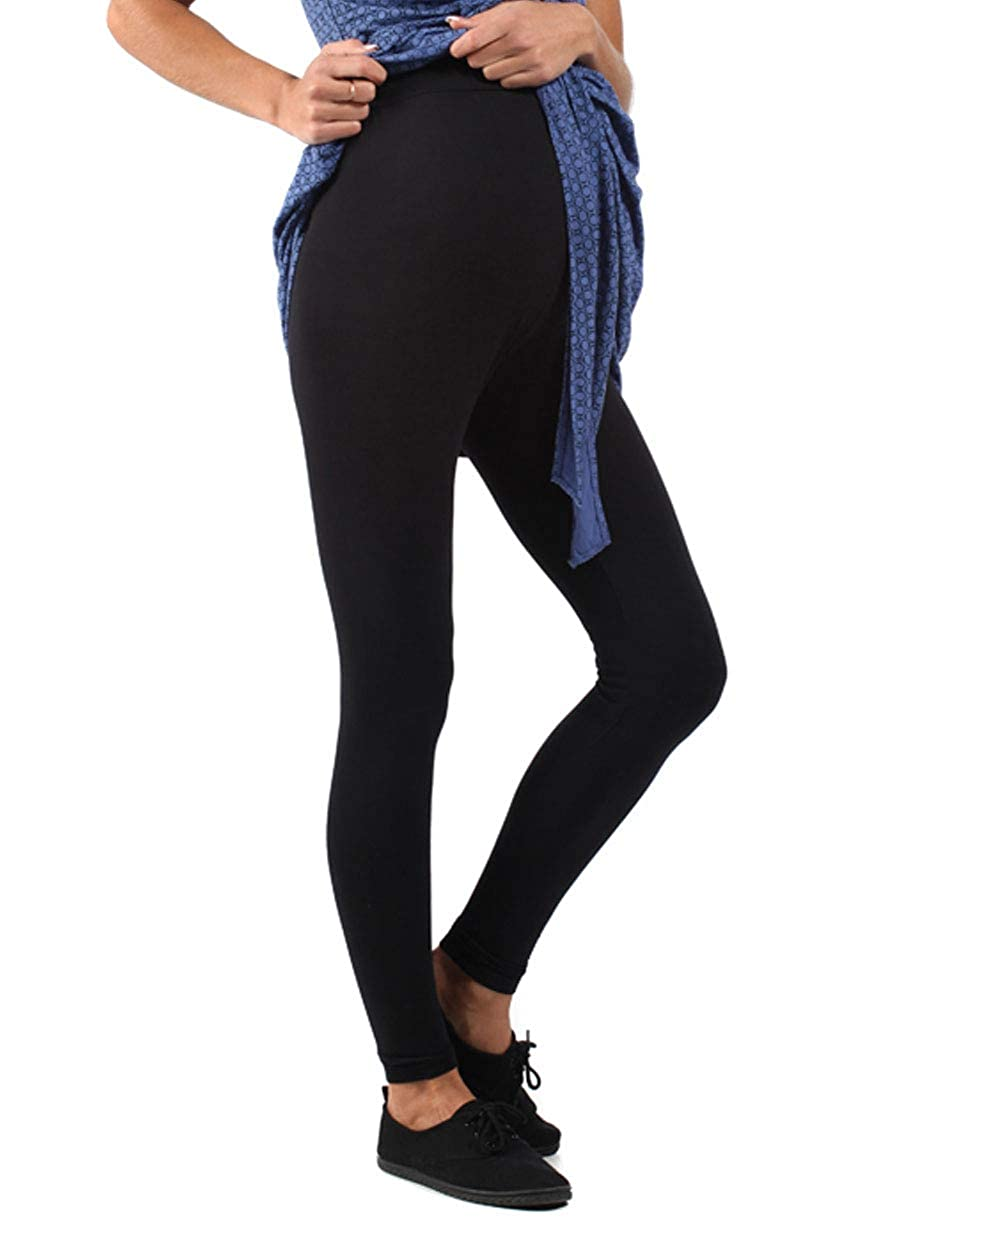 The Essential One - Maternity legging